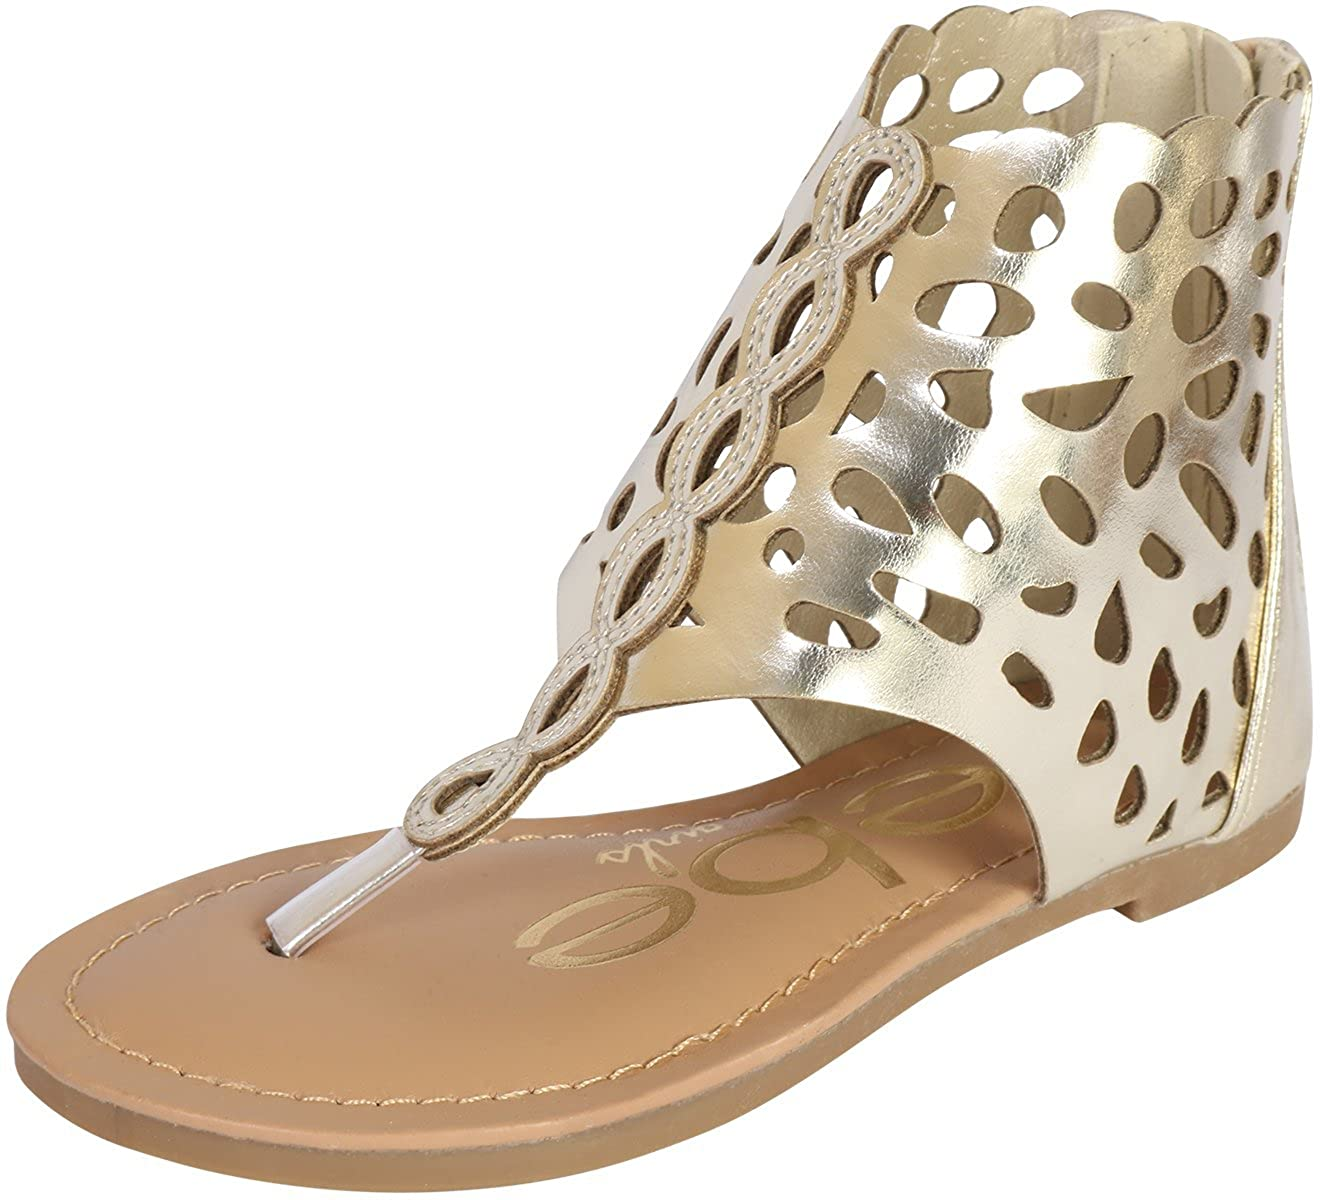 bebe Girls Gladiator Thong Sandal (Toddler/Little Kid/Big Kid)